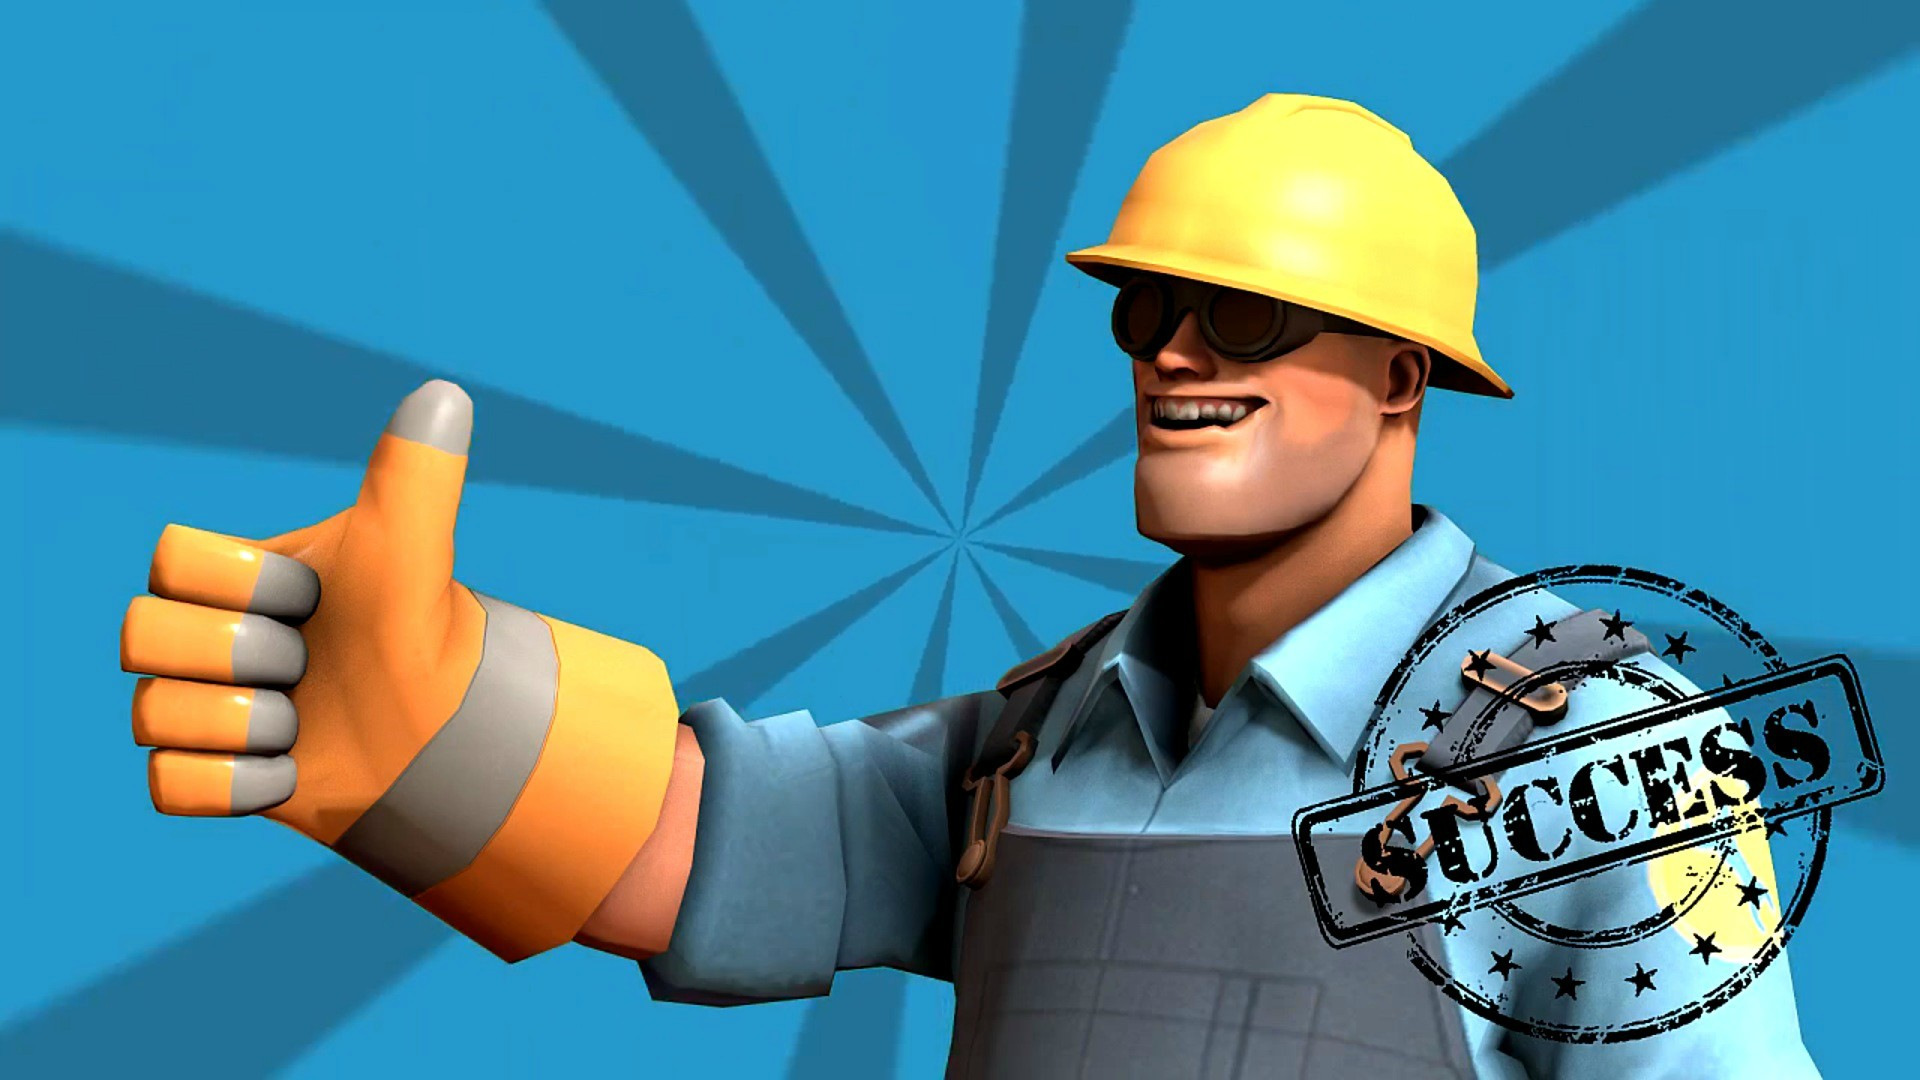 Games wallpaper gaming team fortress 2 engineer